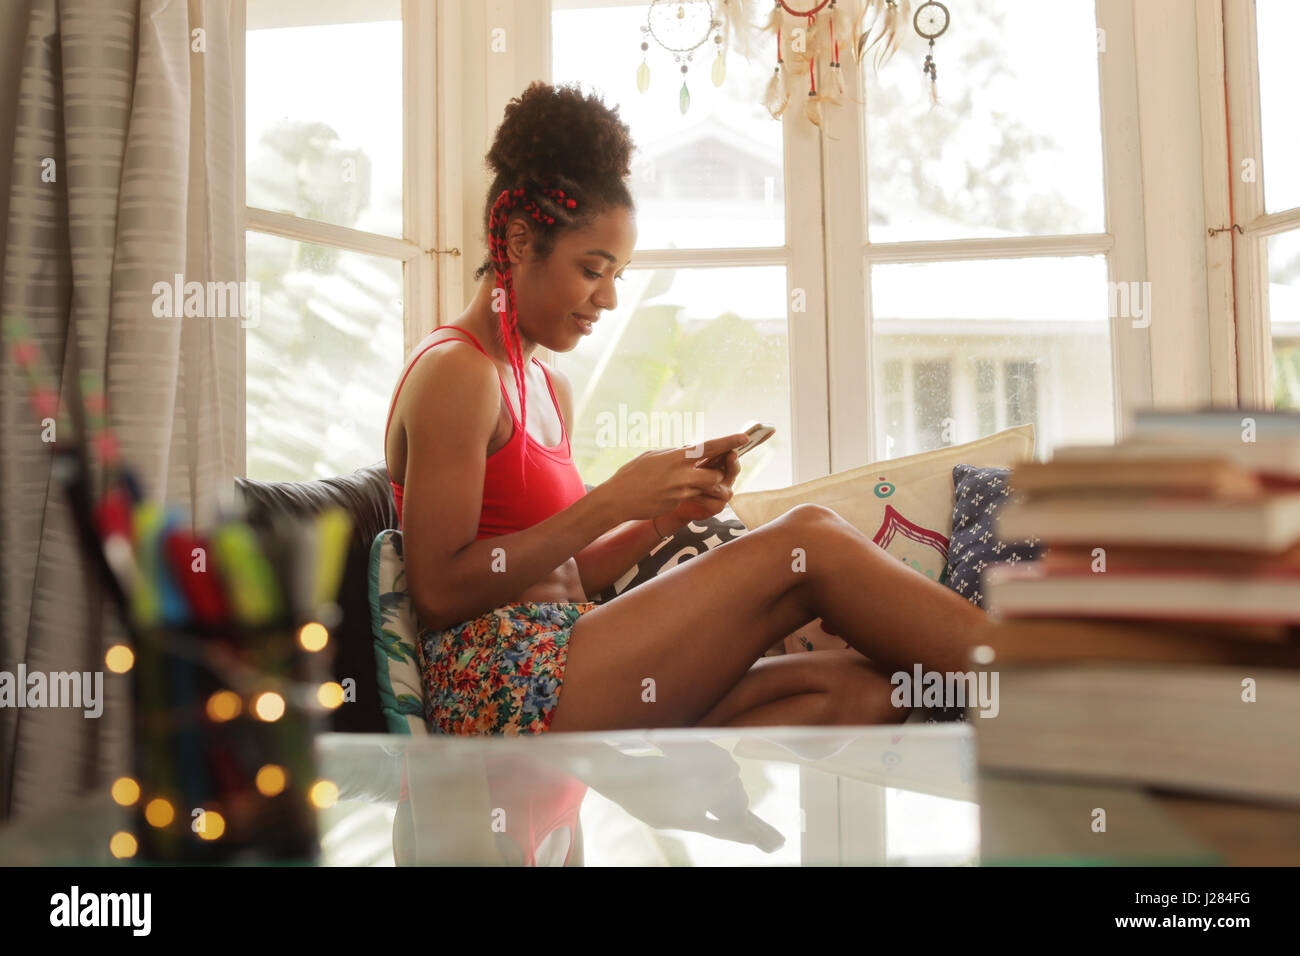 Black girl lying on couch and using smartphone, young african american woman relaxing with mobile phone. Happy latina - Stock Image